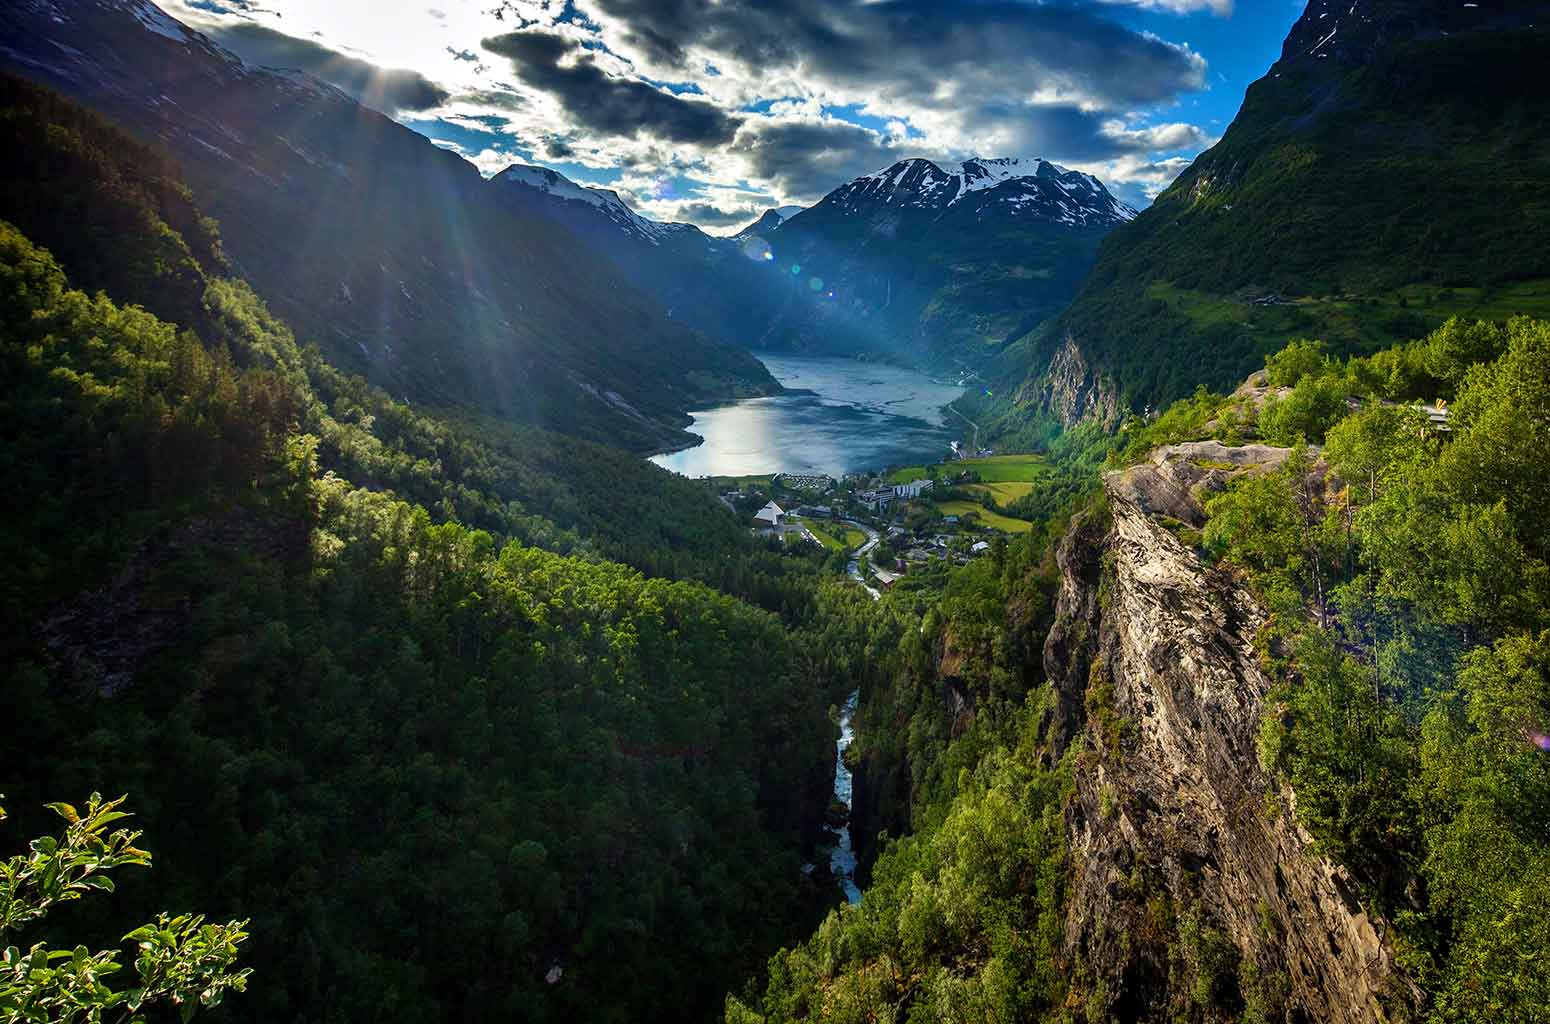 Rays of sun on the Geirangerfjord, seen from Flydalsjuvet